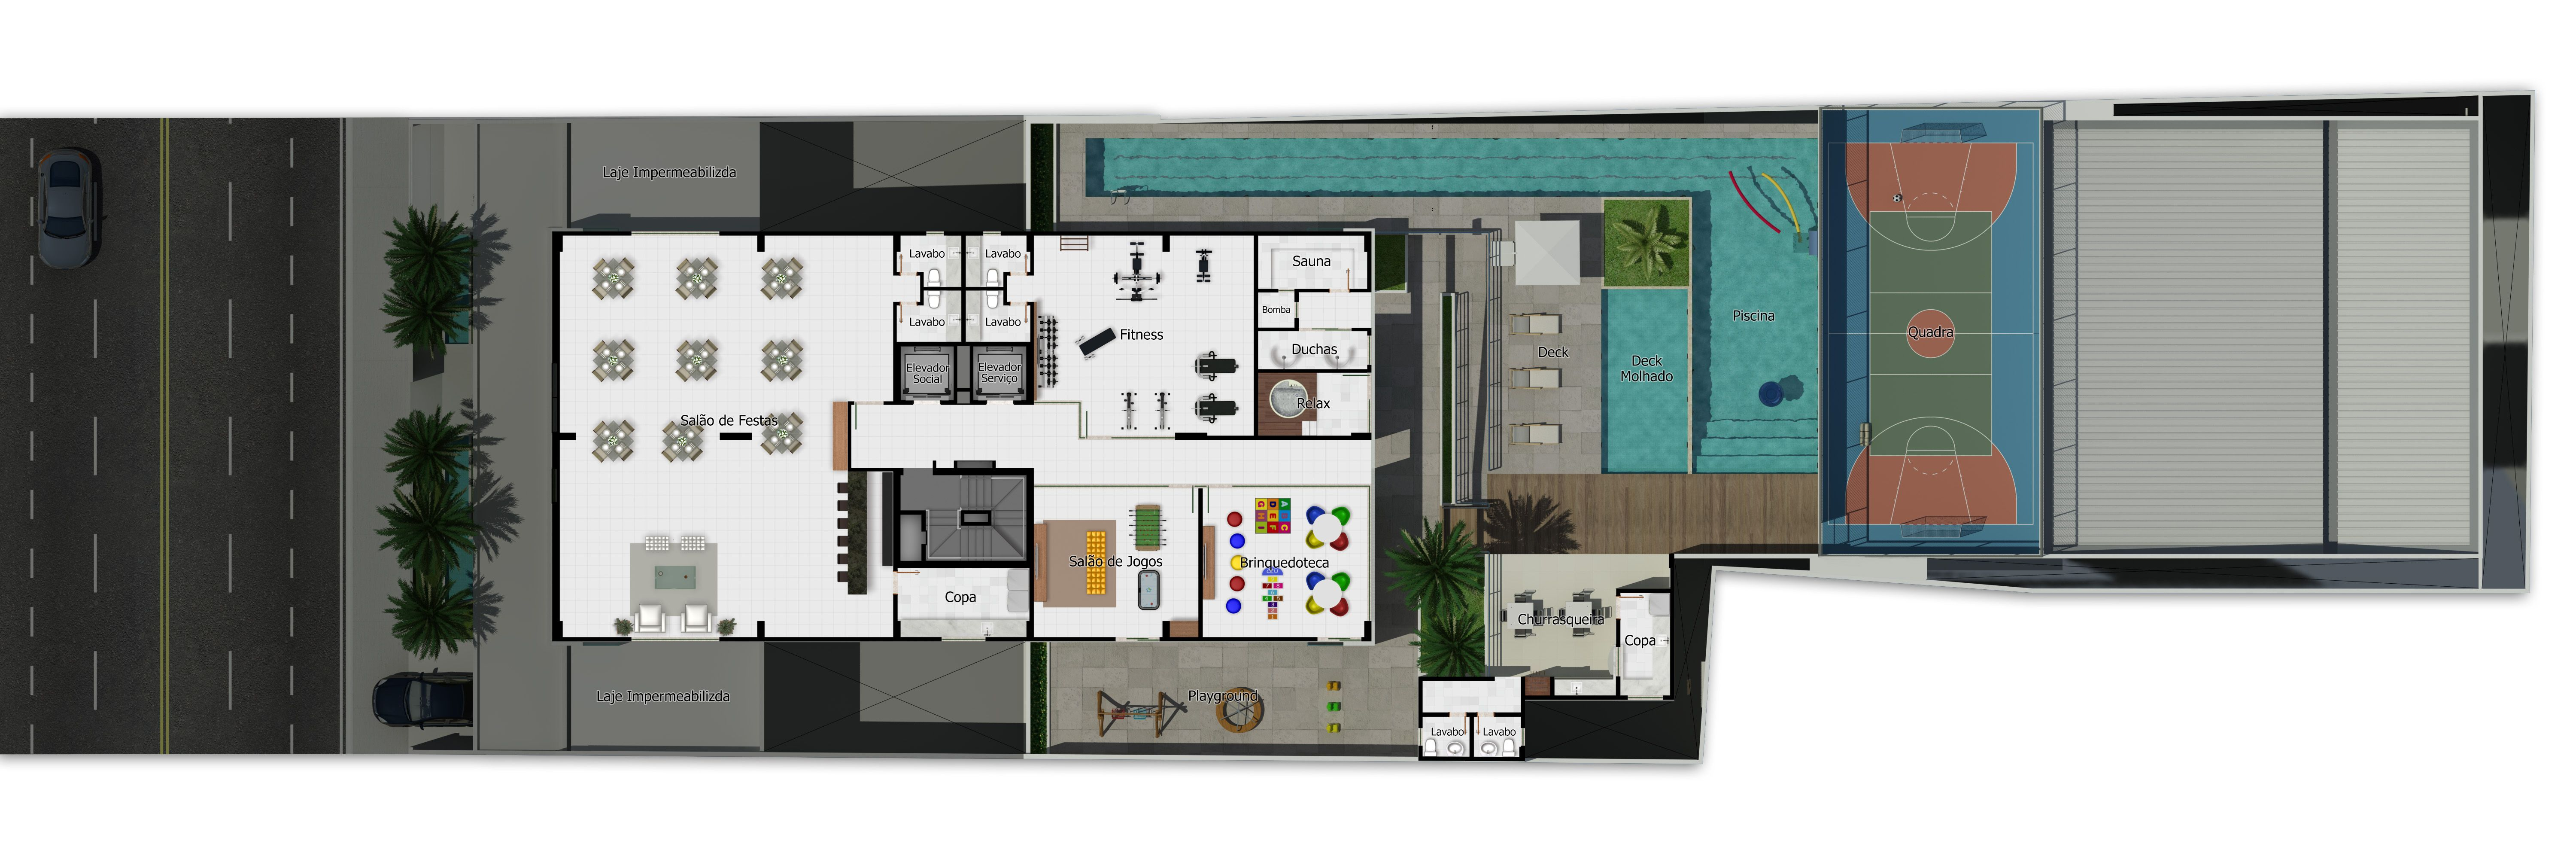 Plantas city way city incorporadora draft floor plans